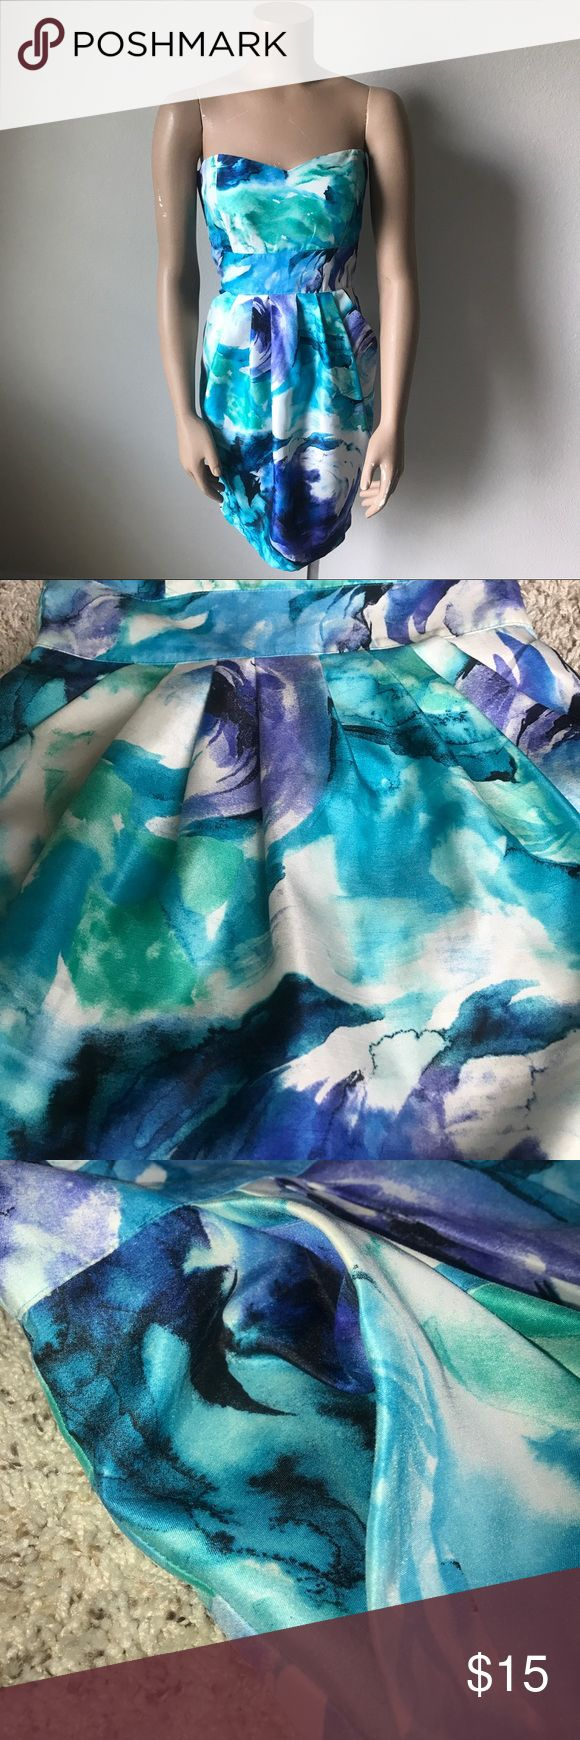 Floral Strapless Dress This floral, strapless dress has a sweetheart neckline and an empire waist bodice. The skirt has pleats, pockets, and a split. The dress has an invisible zipper and hook and eye closure. This dress looks great with silver accessories. B. Smart Dresses Strapless